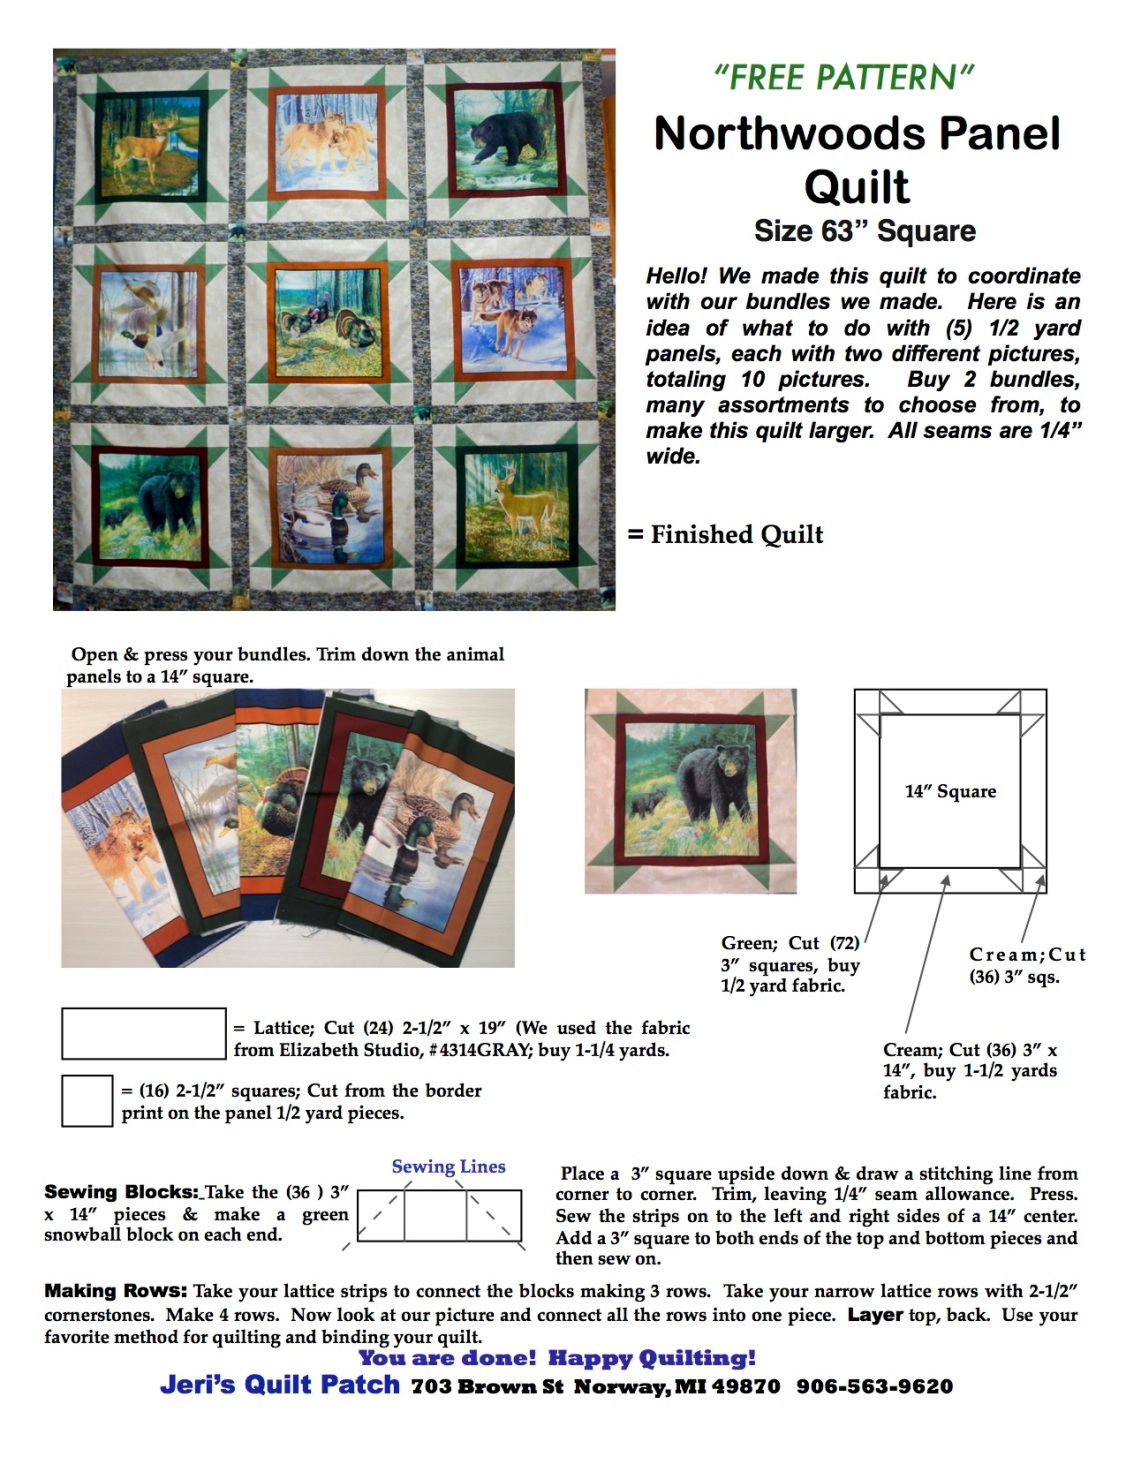 Northwoods Panel Quilt Free Pattern